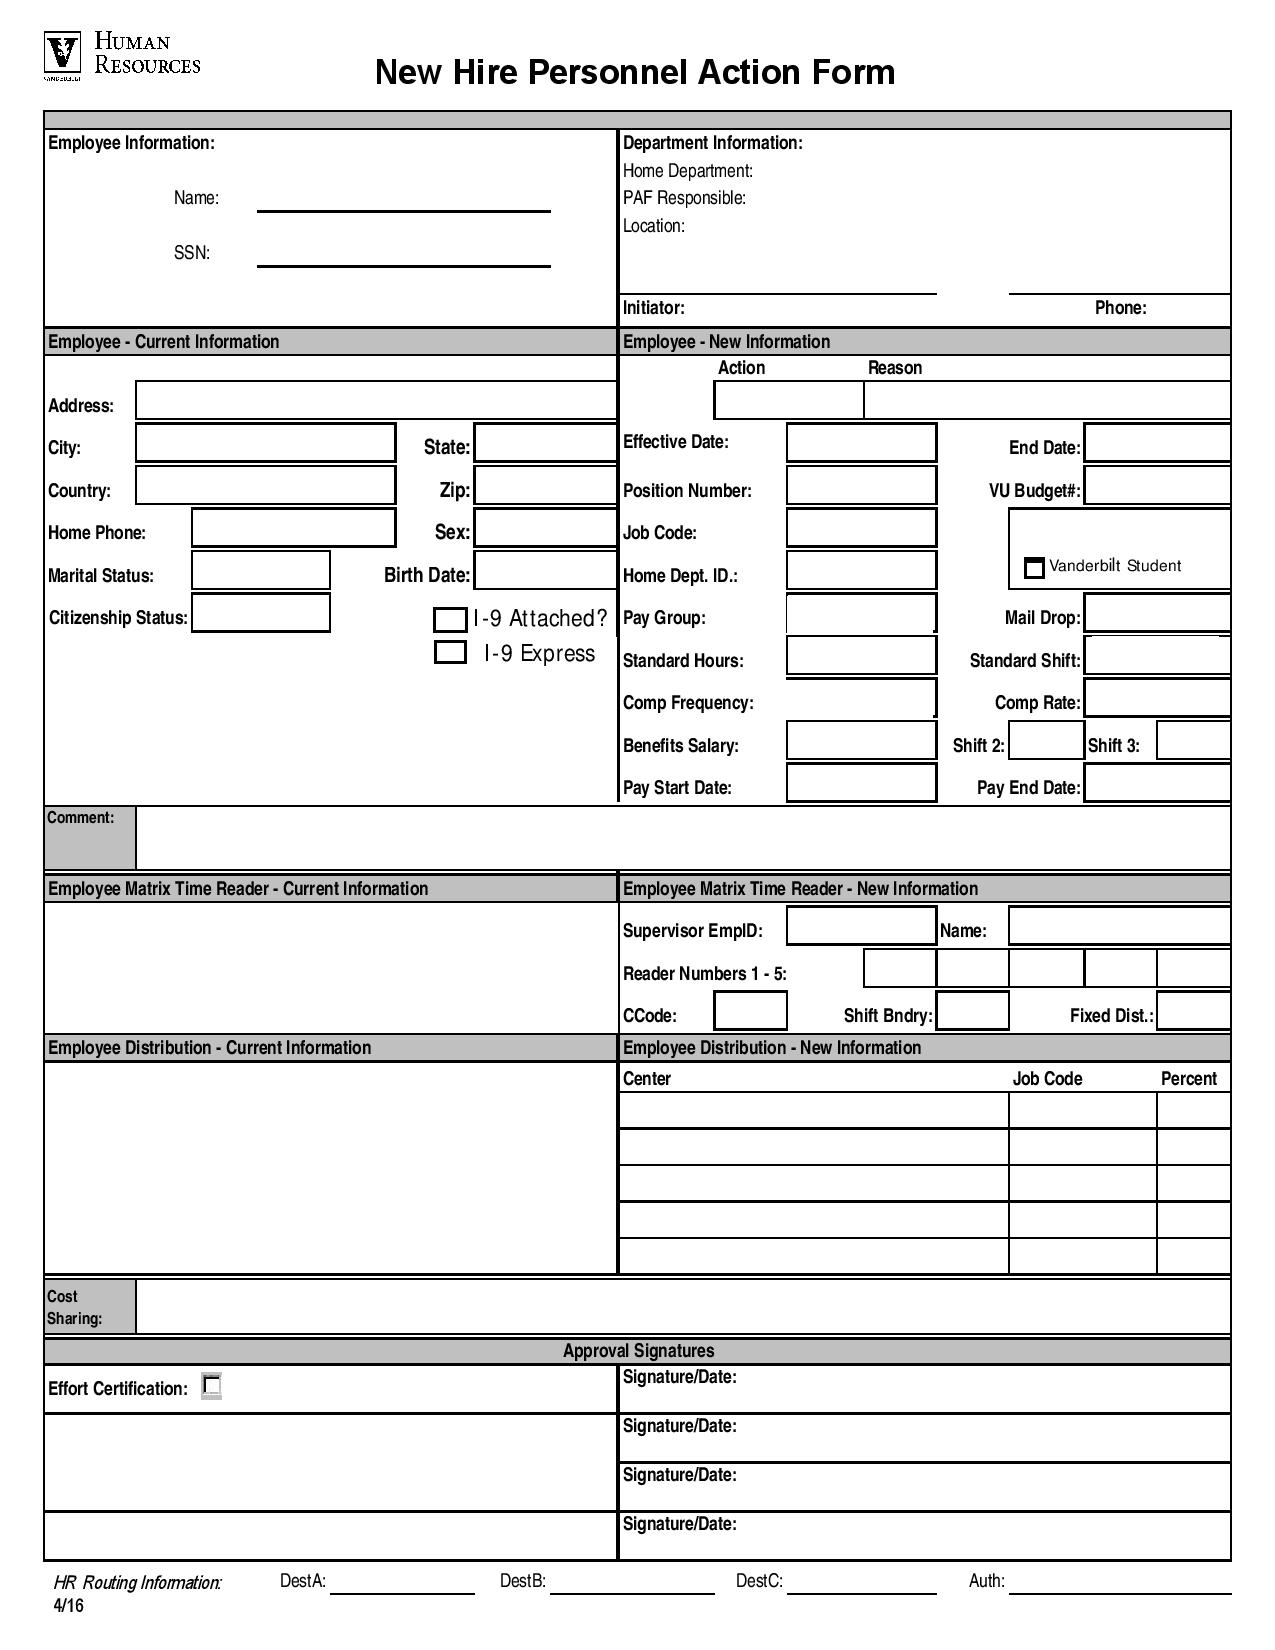 new hire personnel action form page 0012